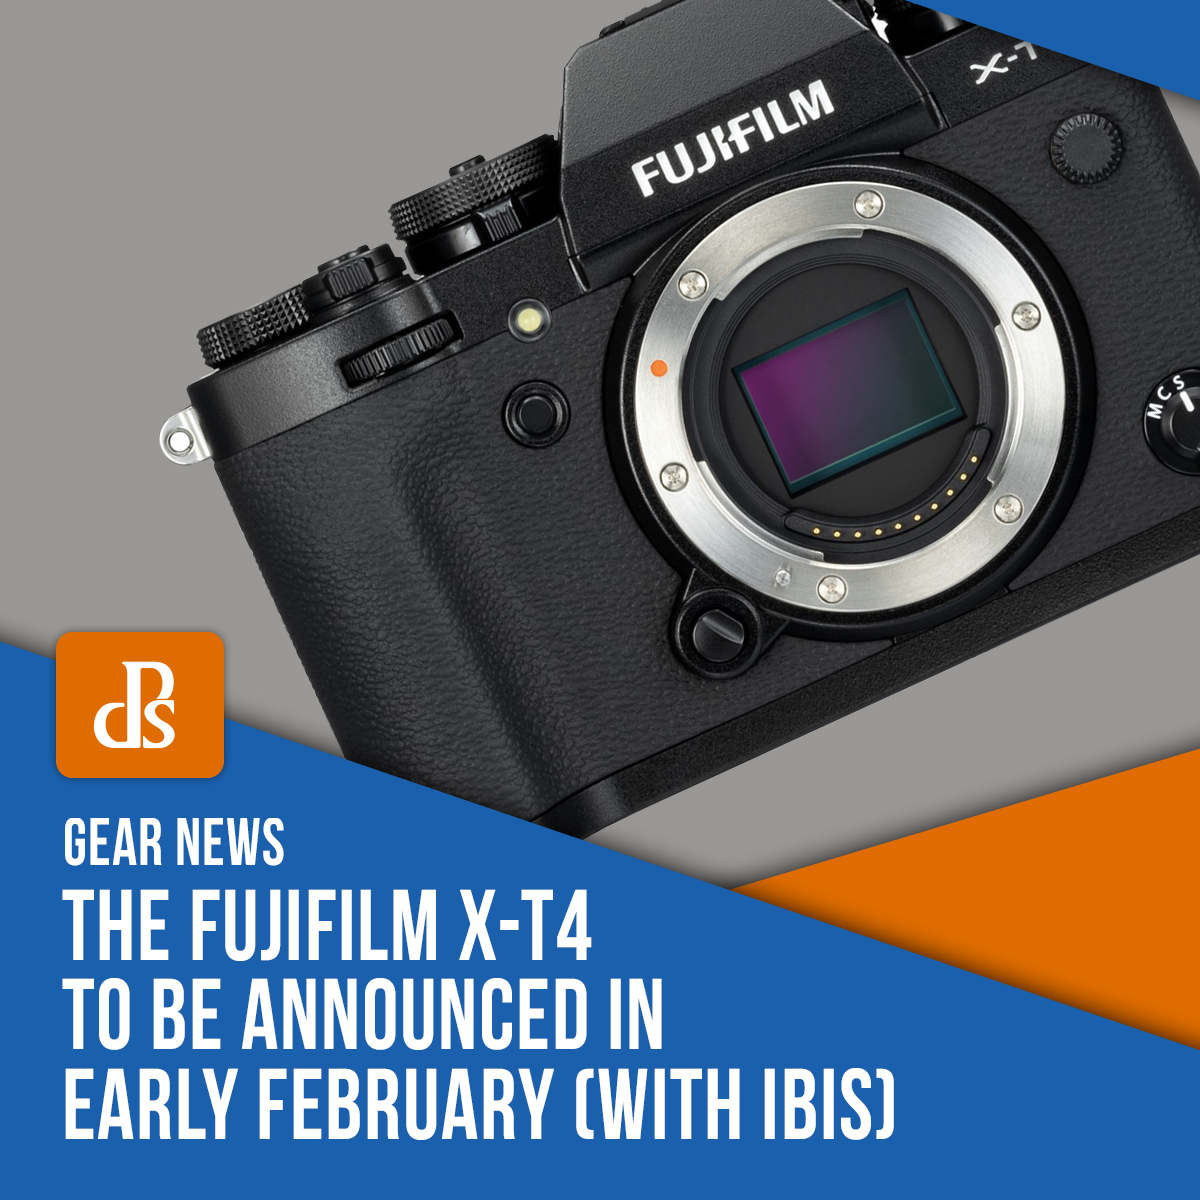 fujifilm-x-t4-to-be-announced